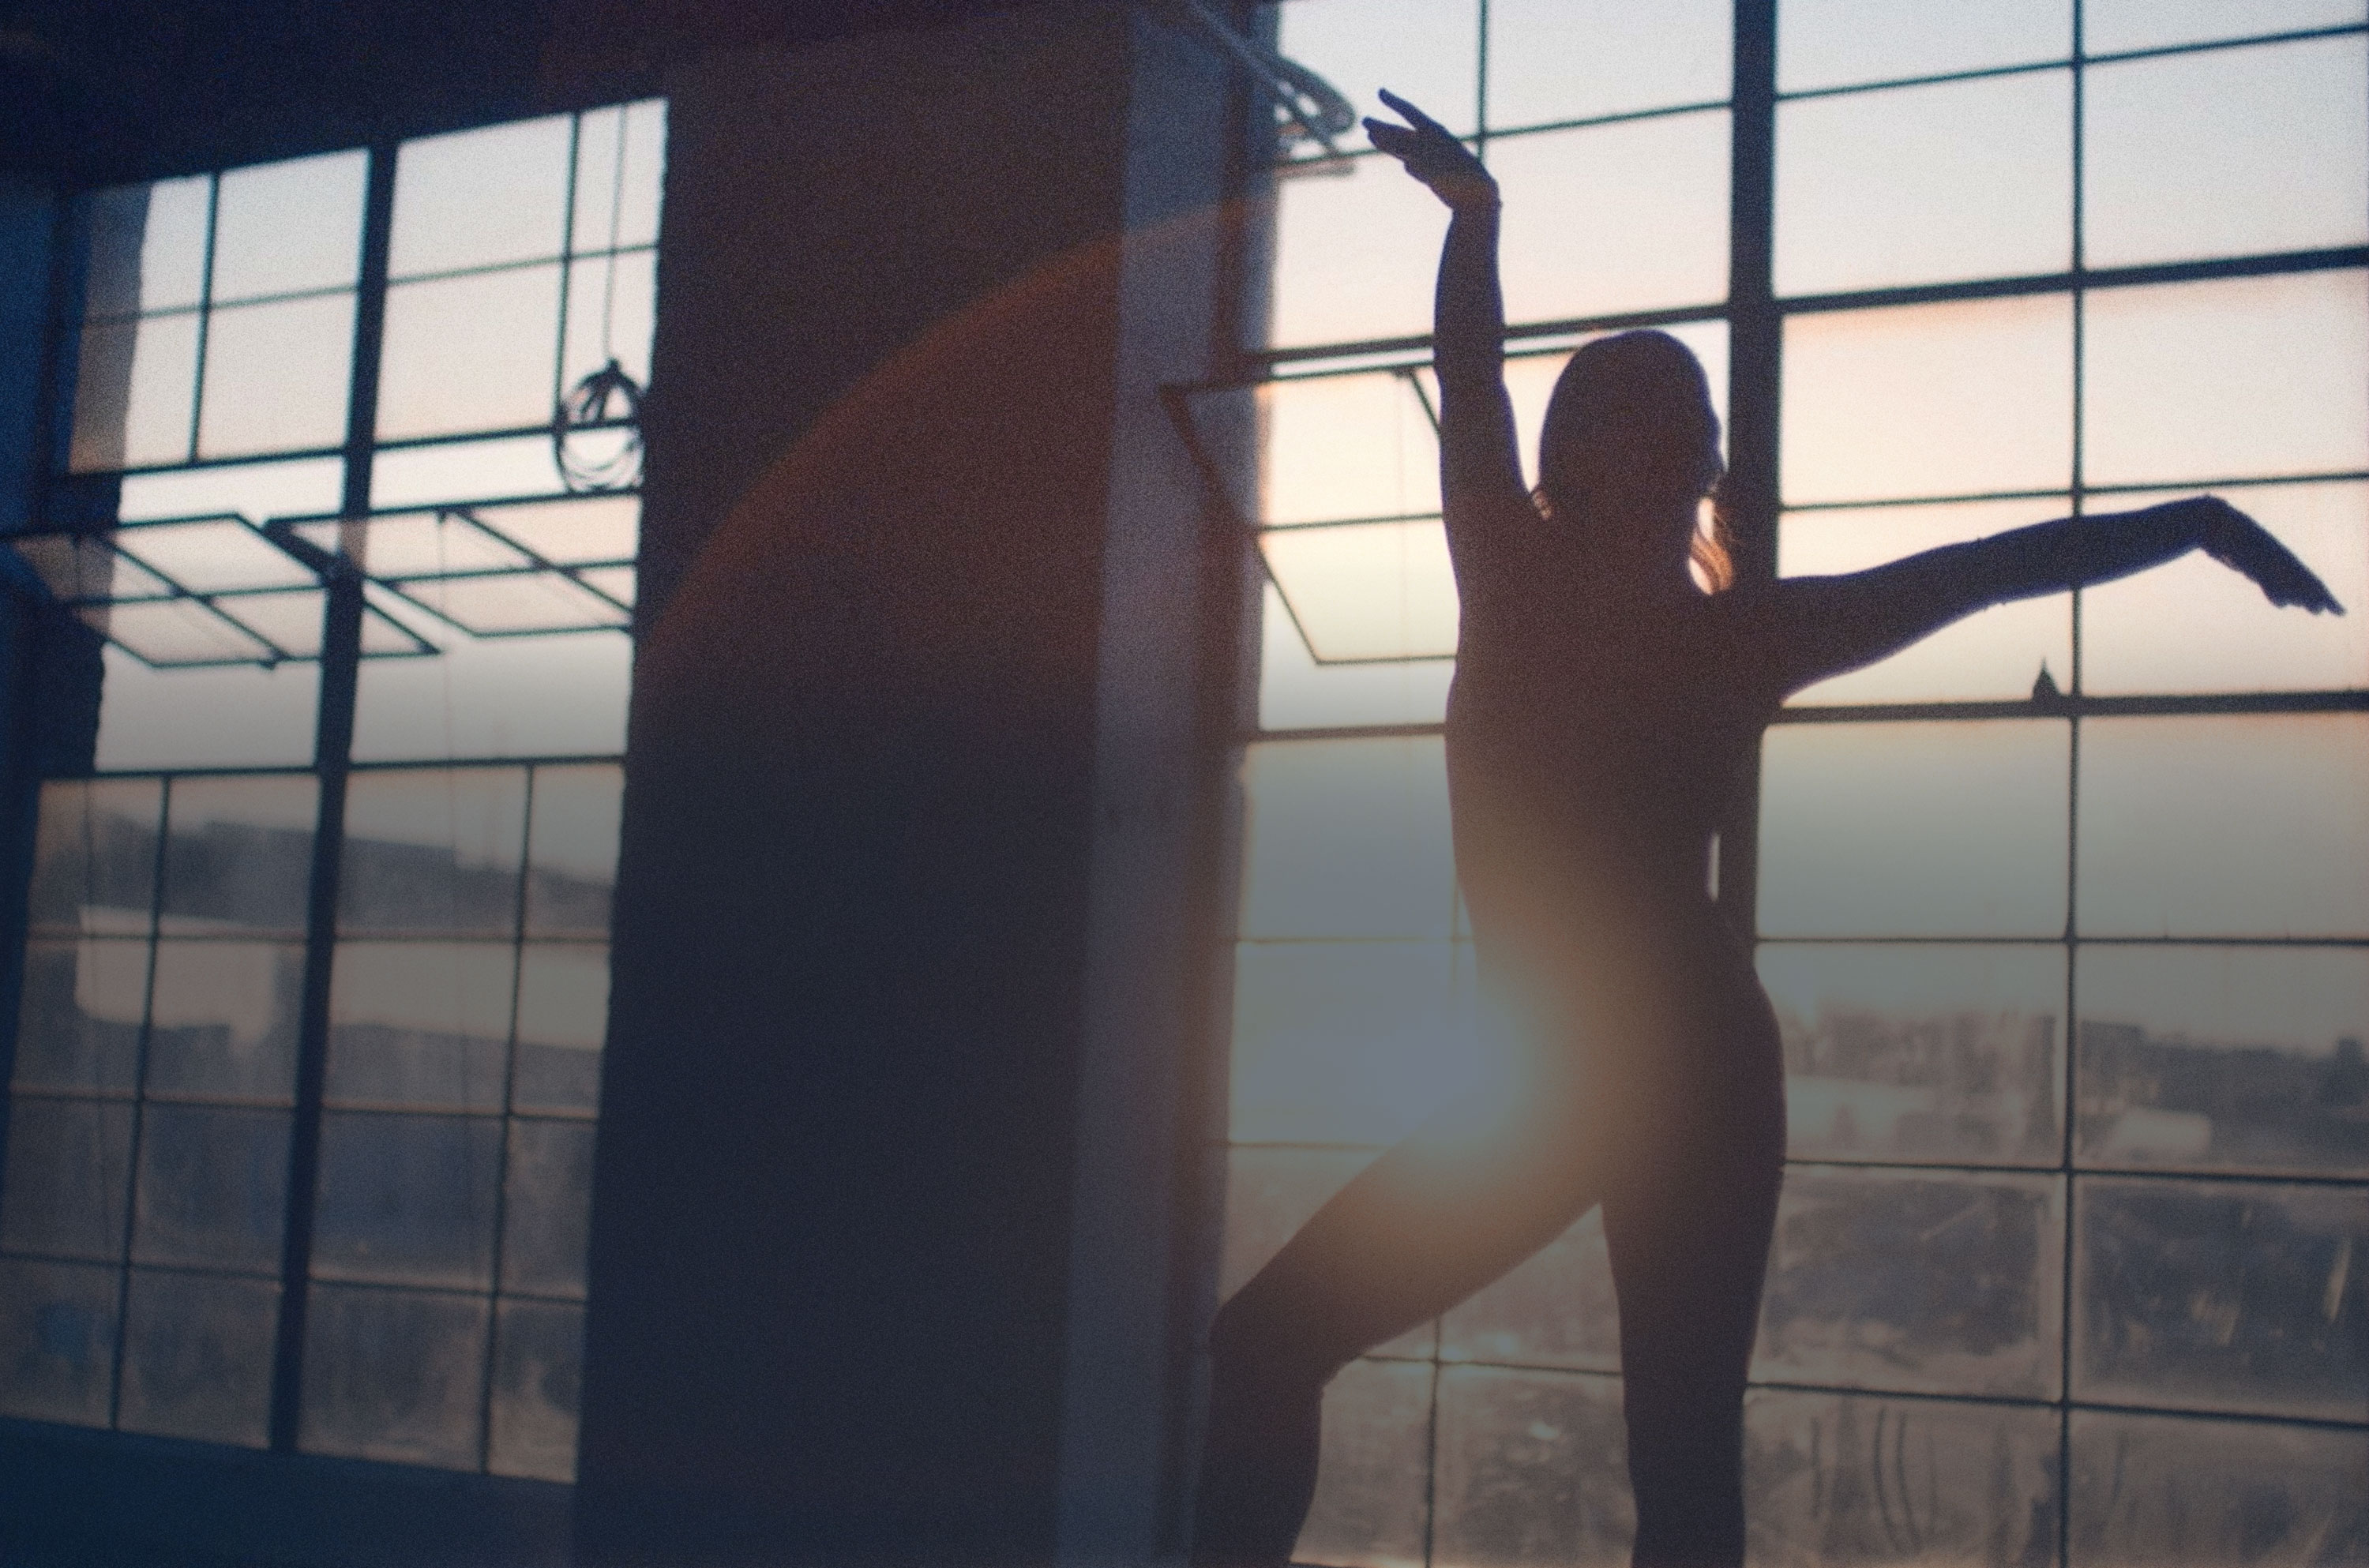 Aly practicing floor gymnastics silhouetted against a sunny window